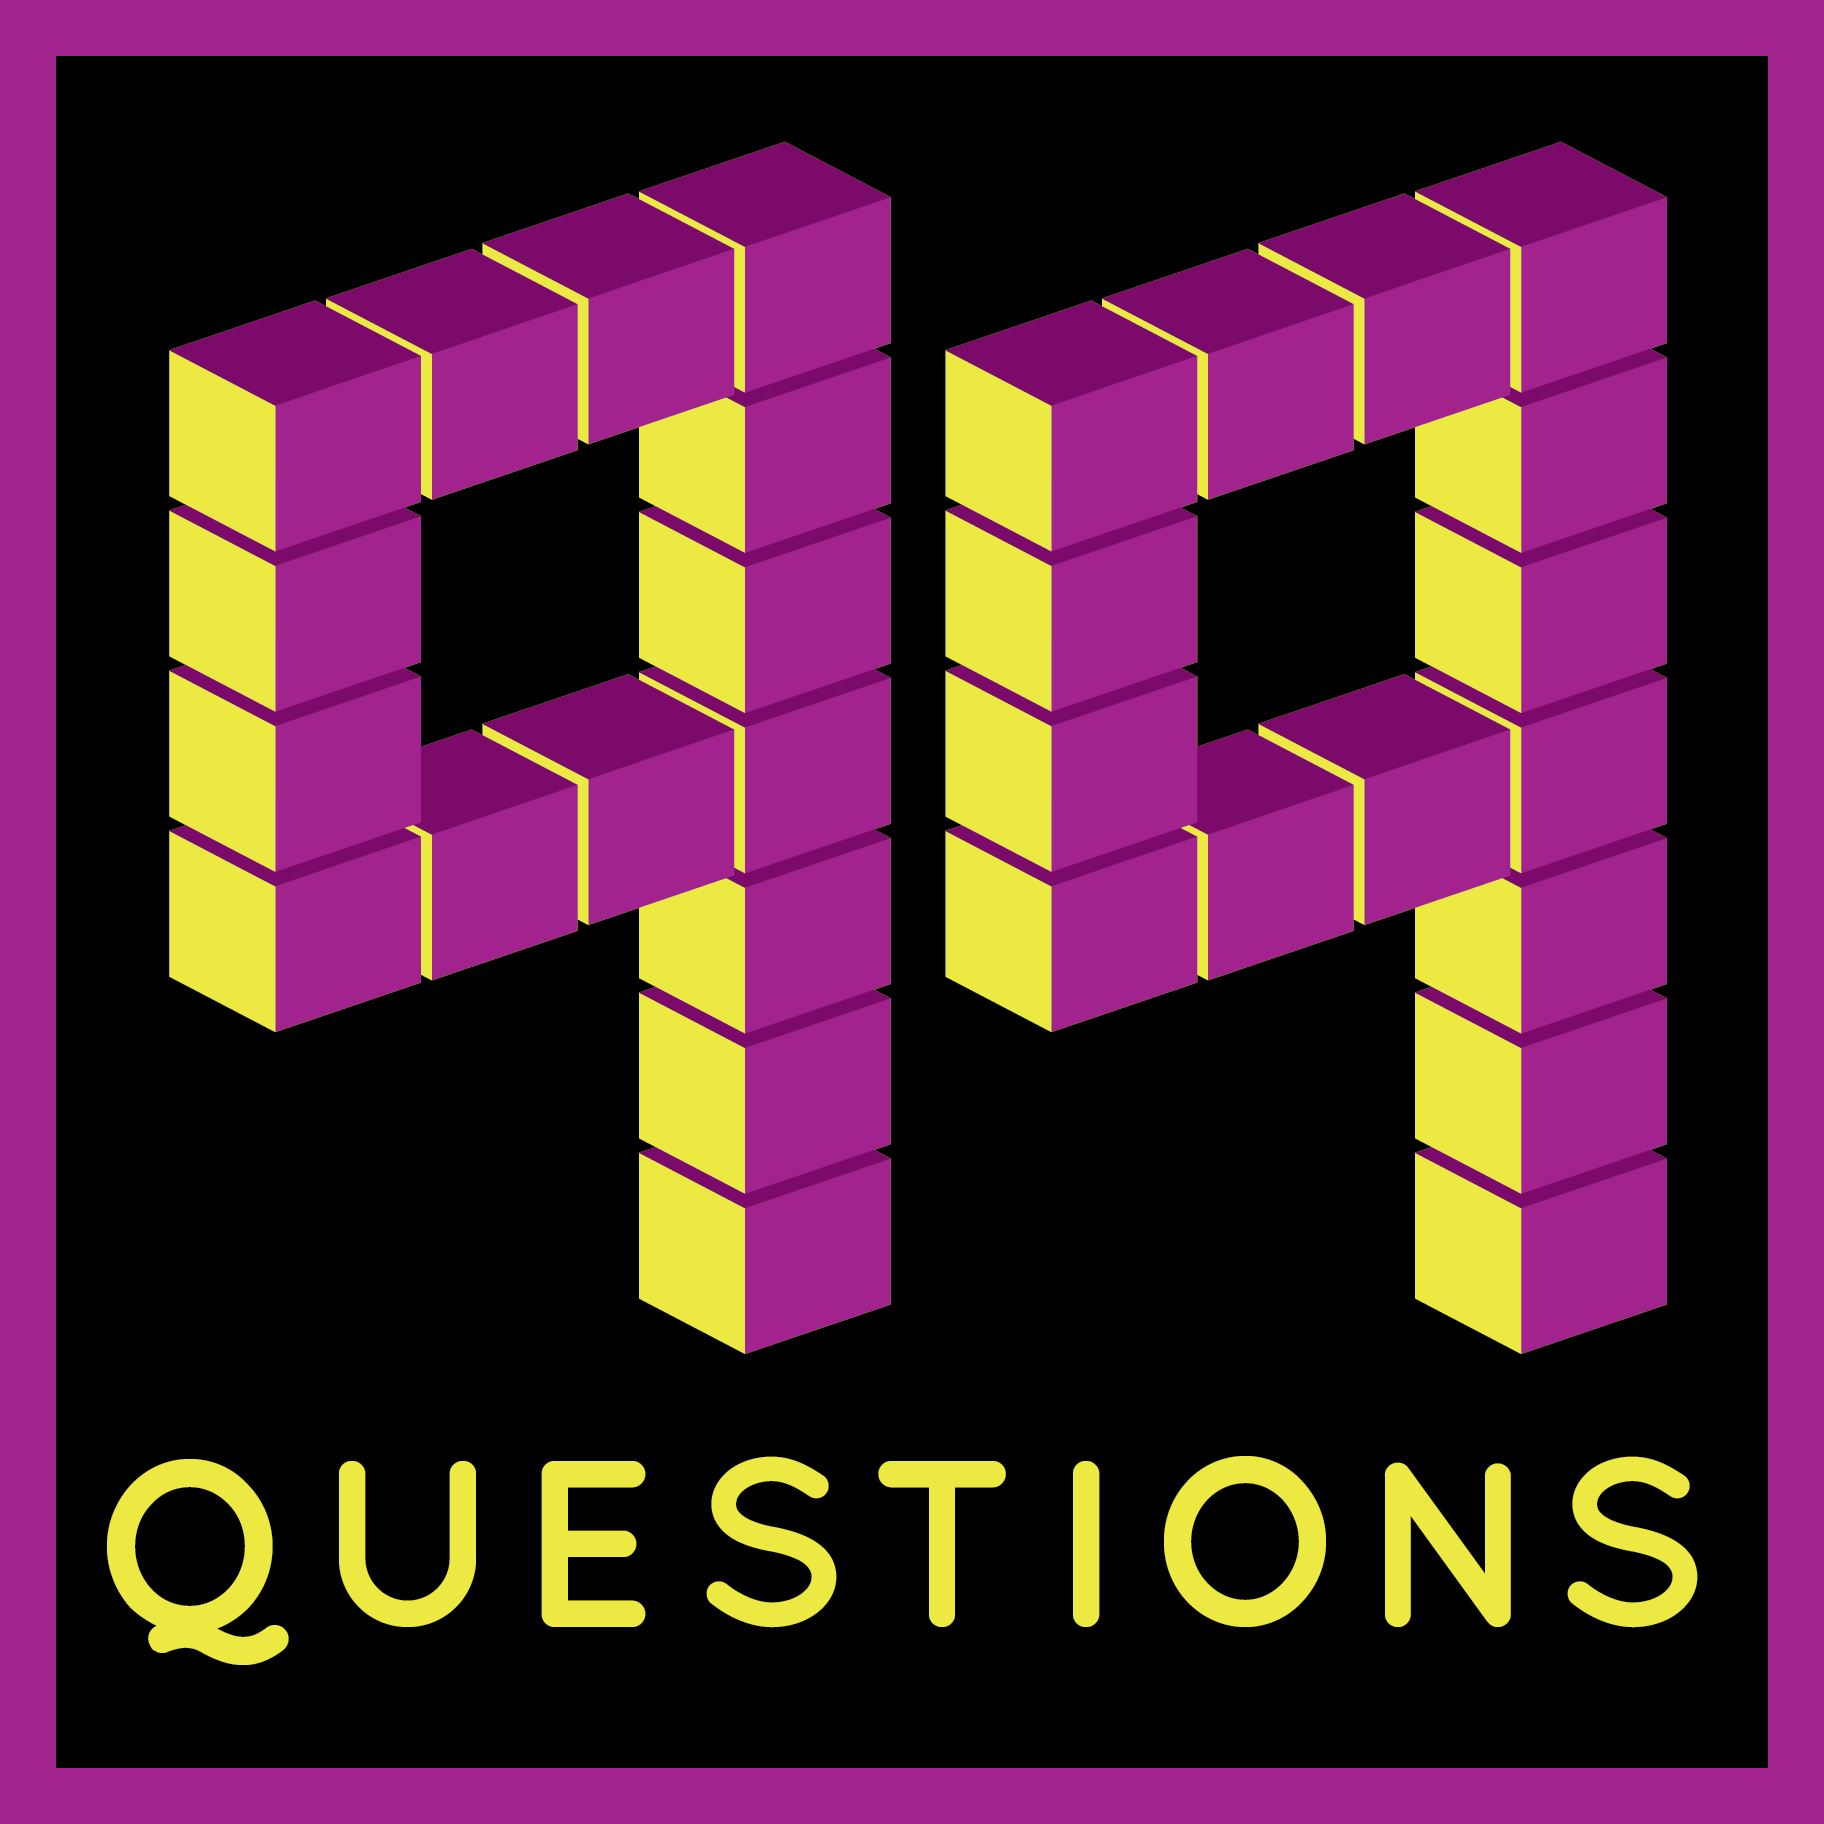 99 Questions